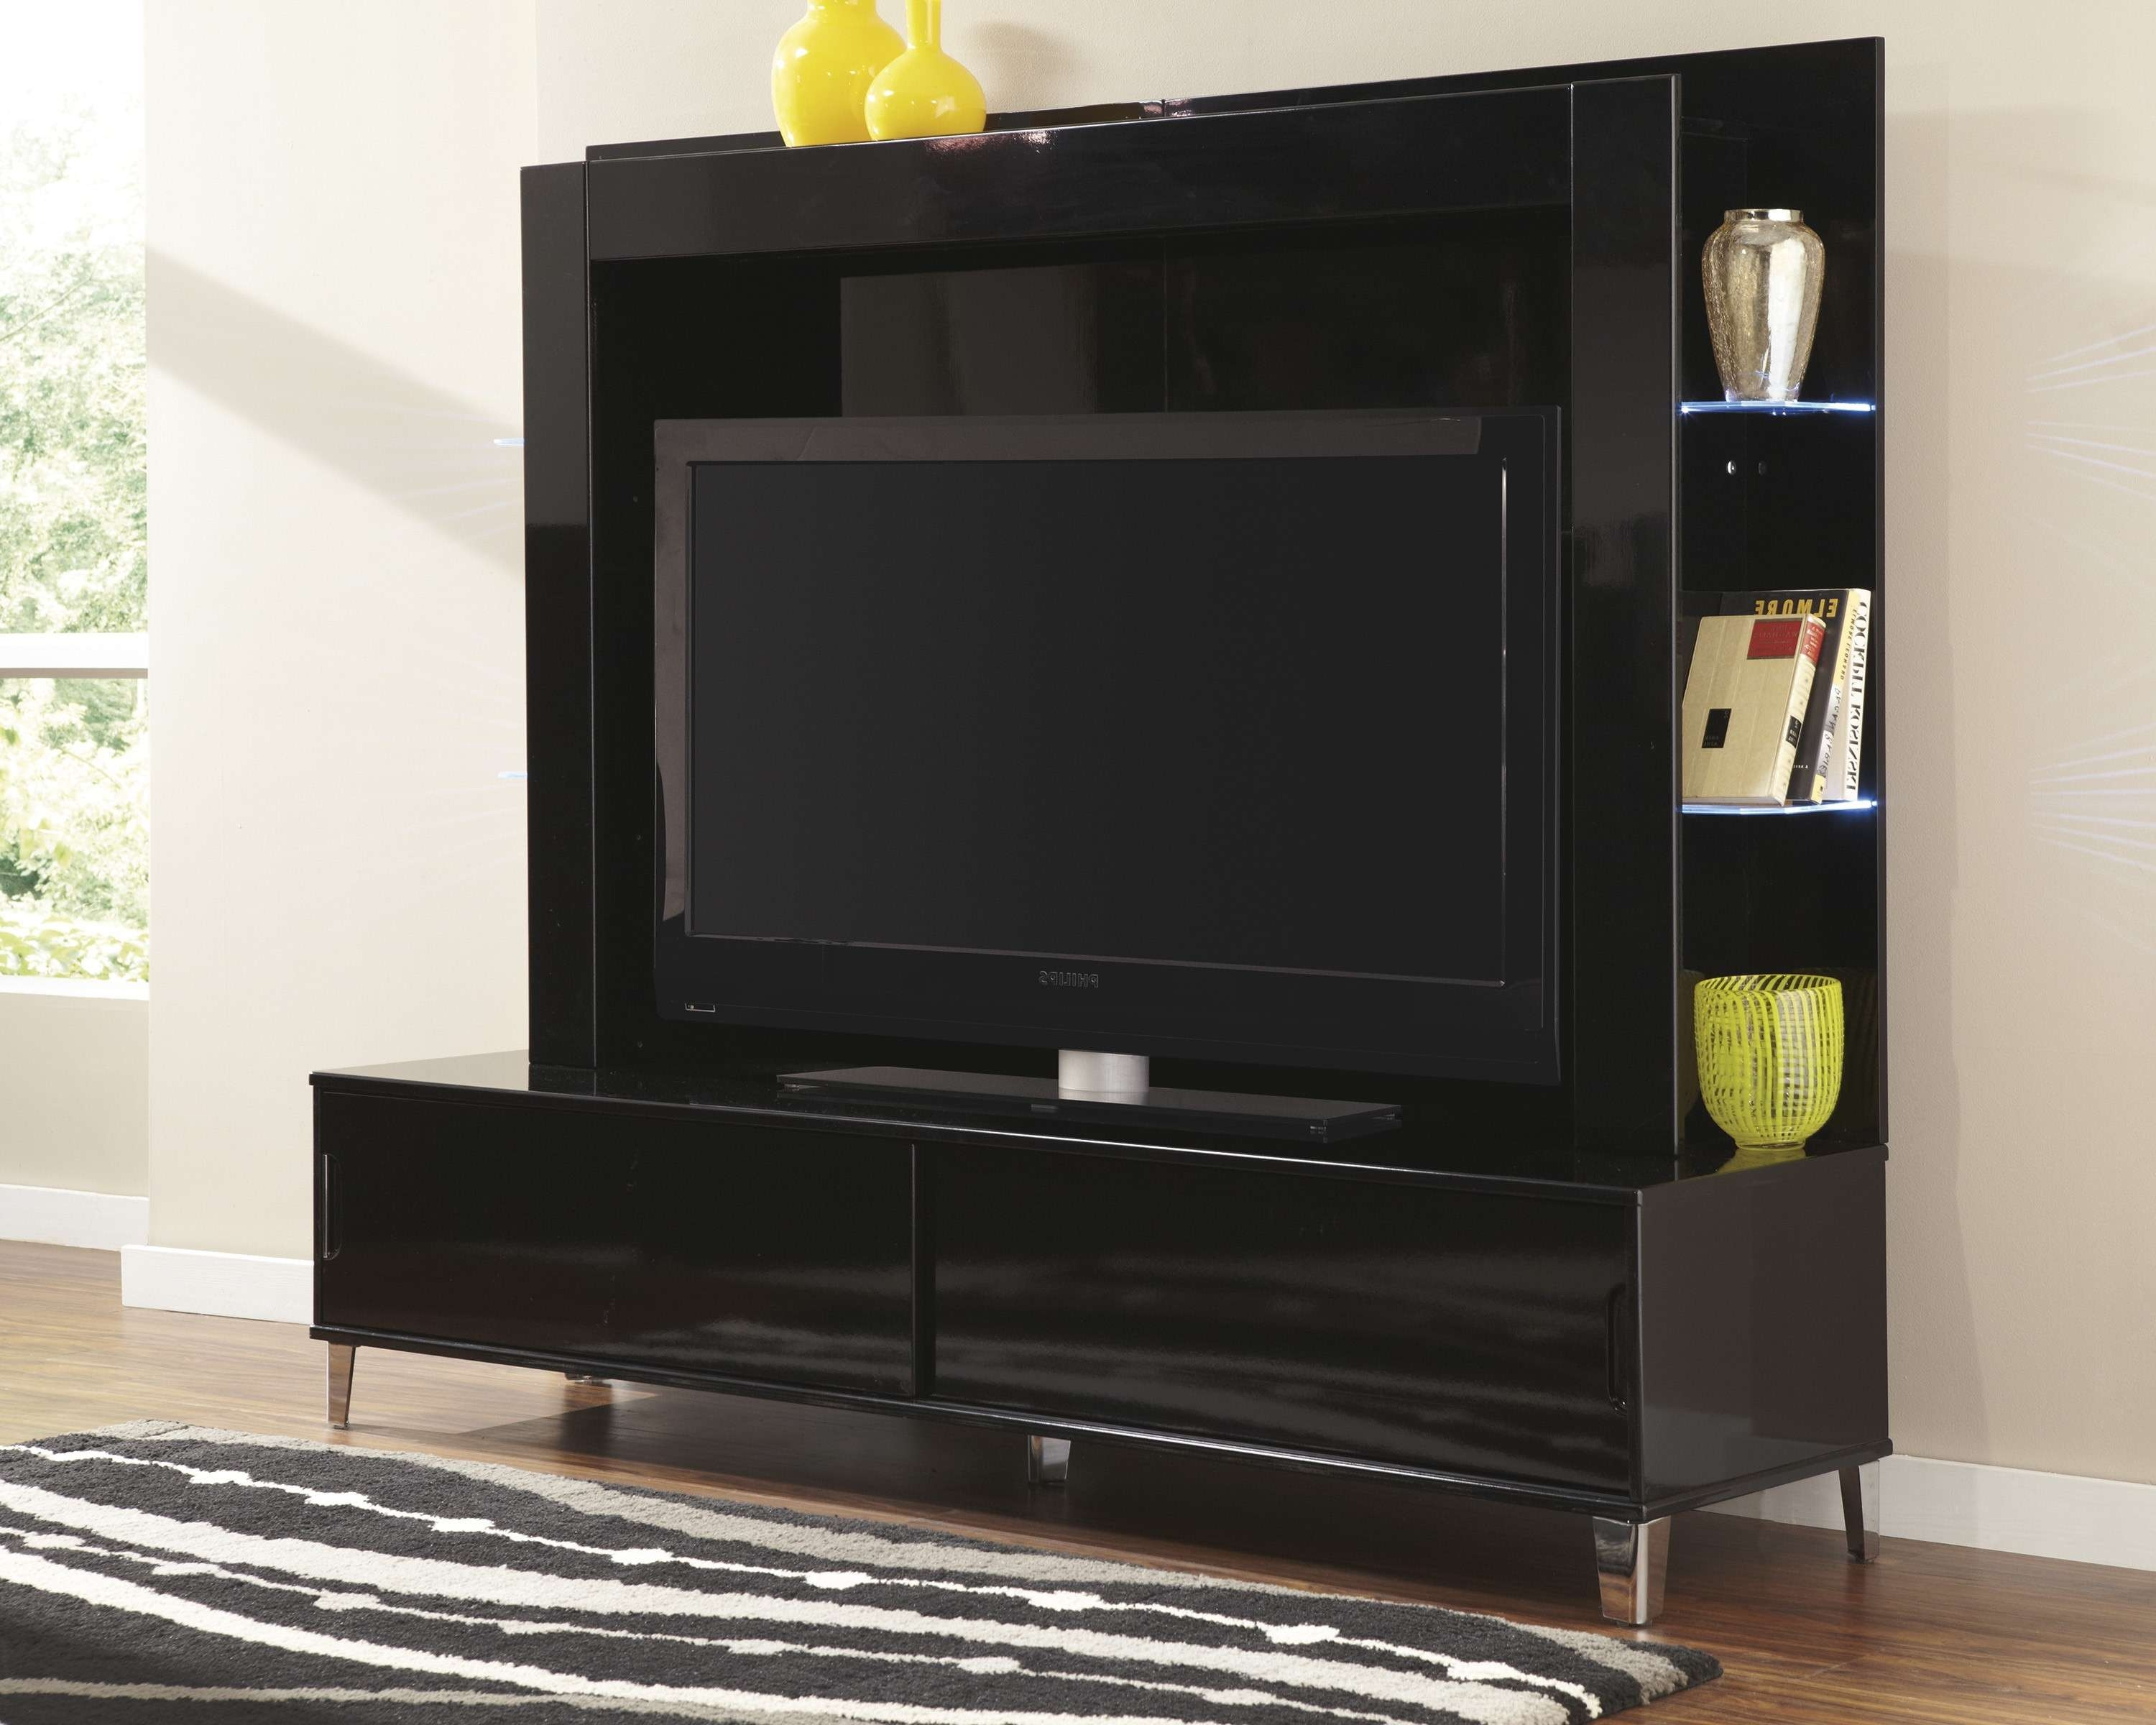 Double Bowl Carpet In Flat Screens Screen Tv Mount Stand Cream Throughout Tall Black Tv Cabinets (View 18 of 20)